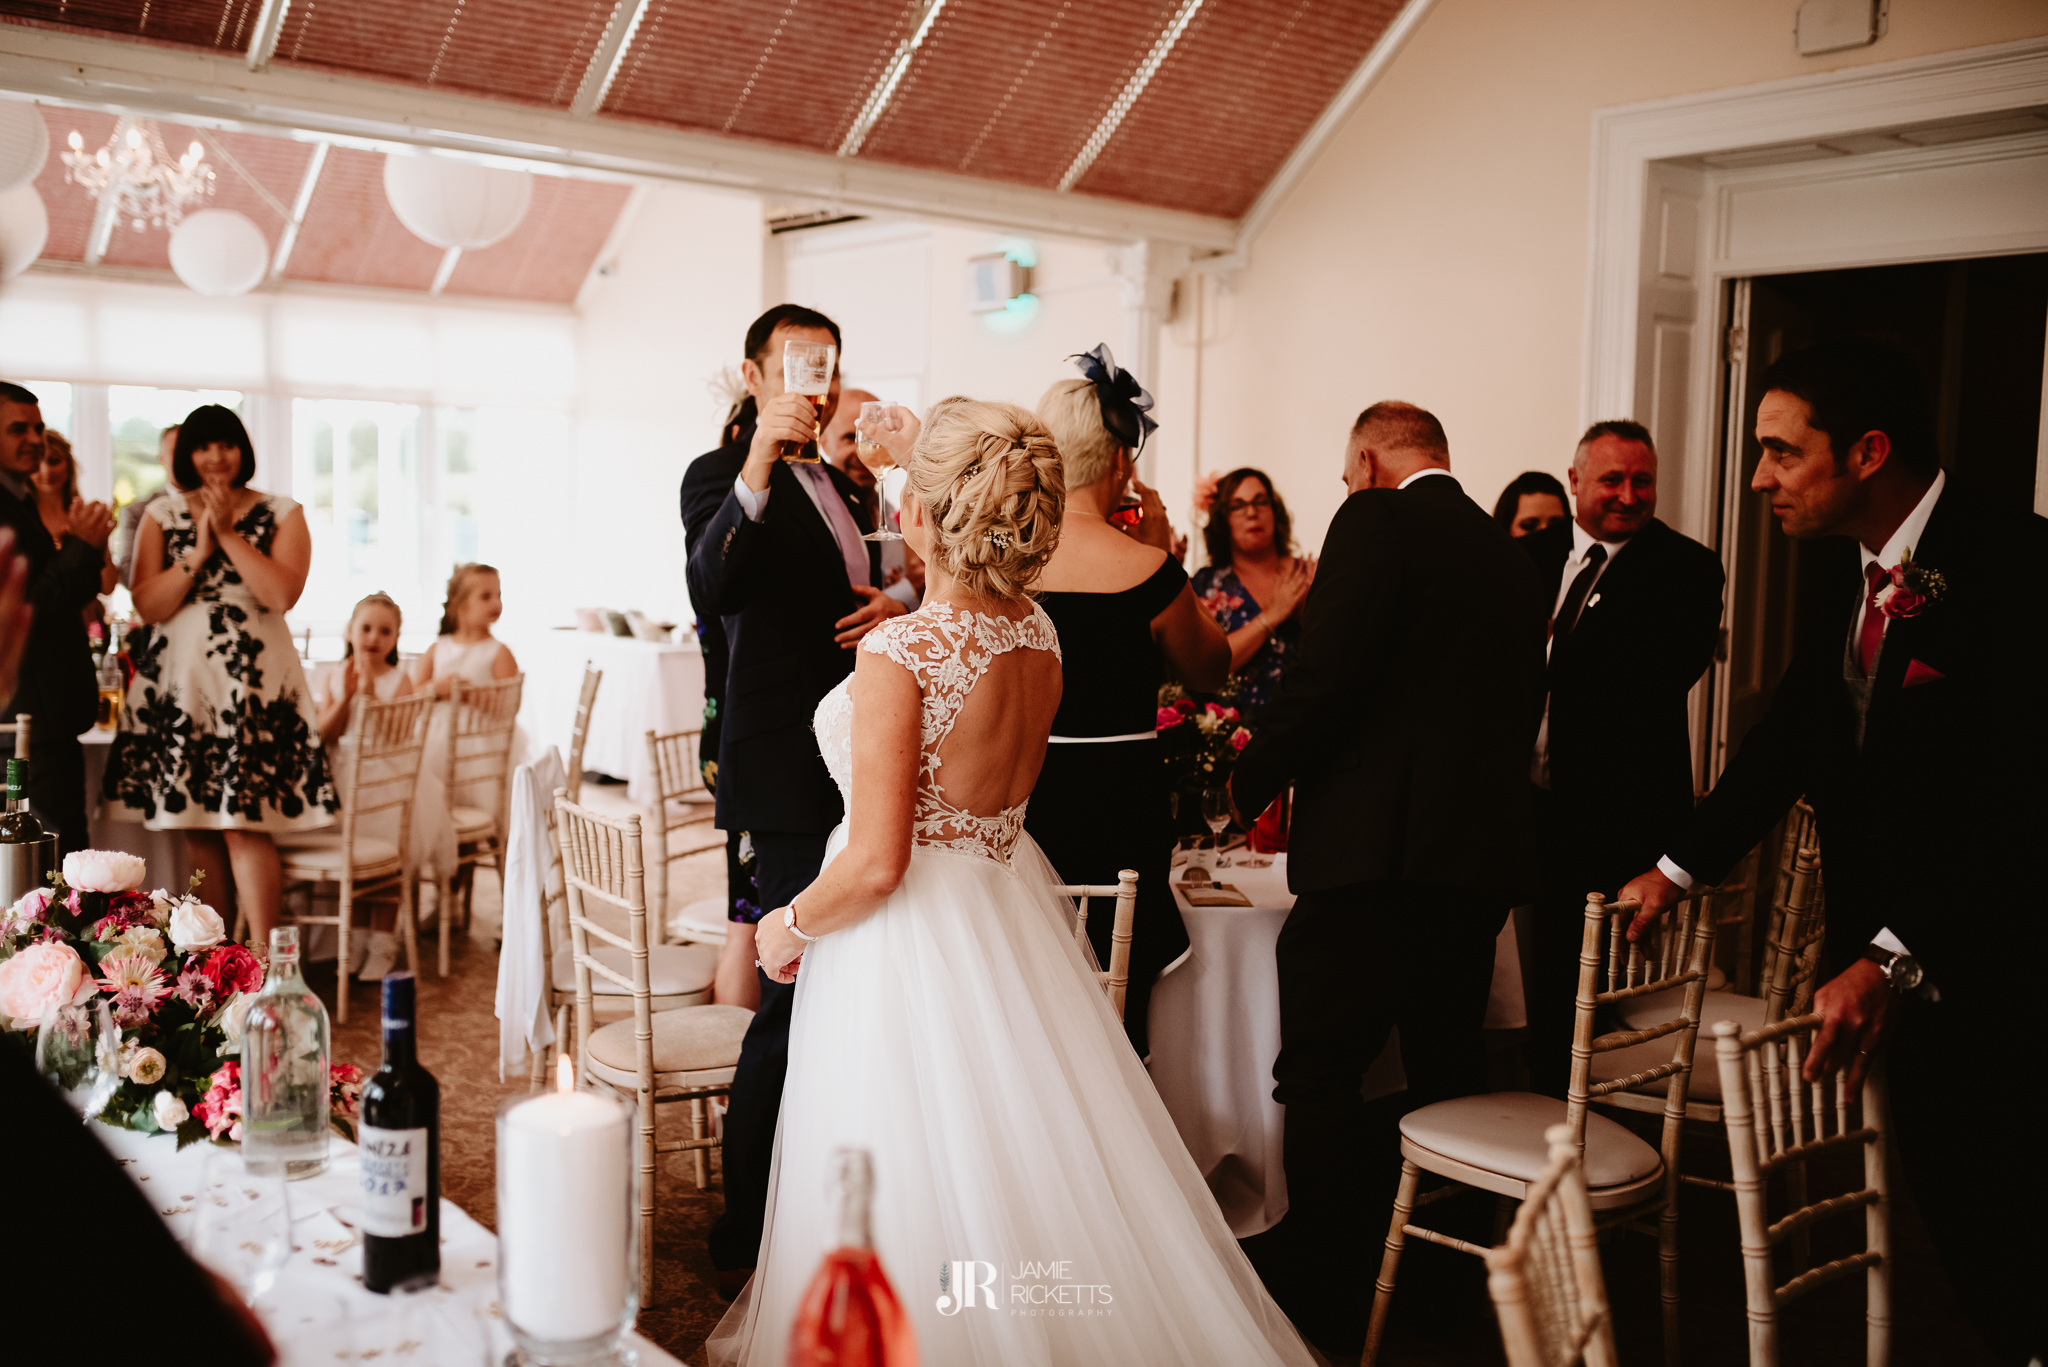 Wroxeter-Hotel-Wedding-Photography-In-Shropshire-By-Shropshire-Wedding-Photographer-Jamie-Ricketts-144.JPG